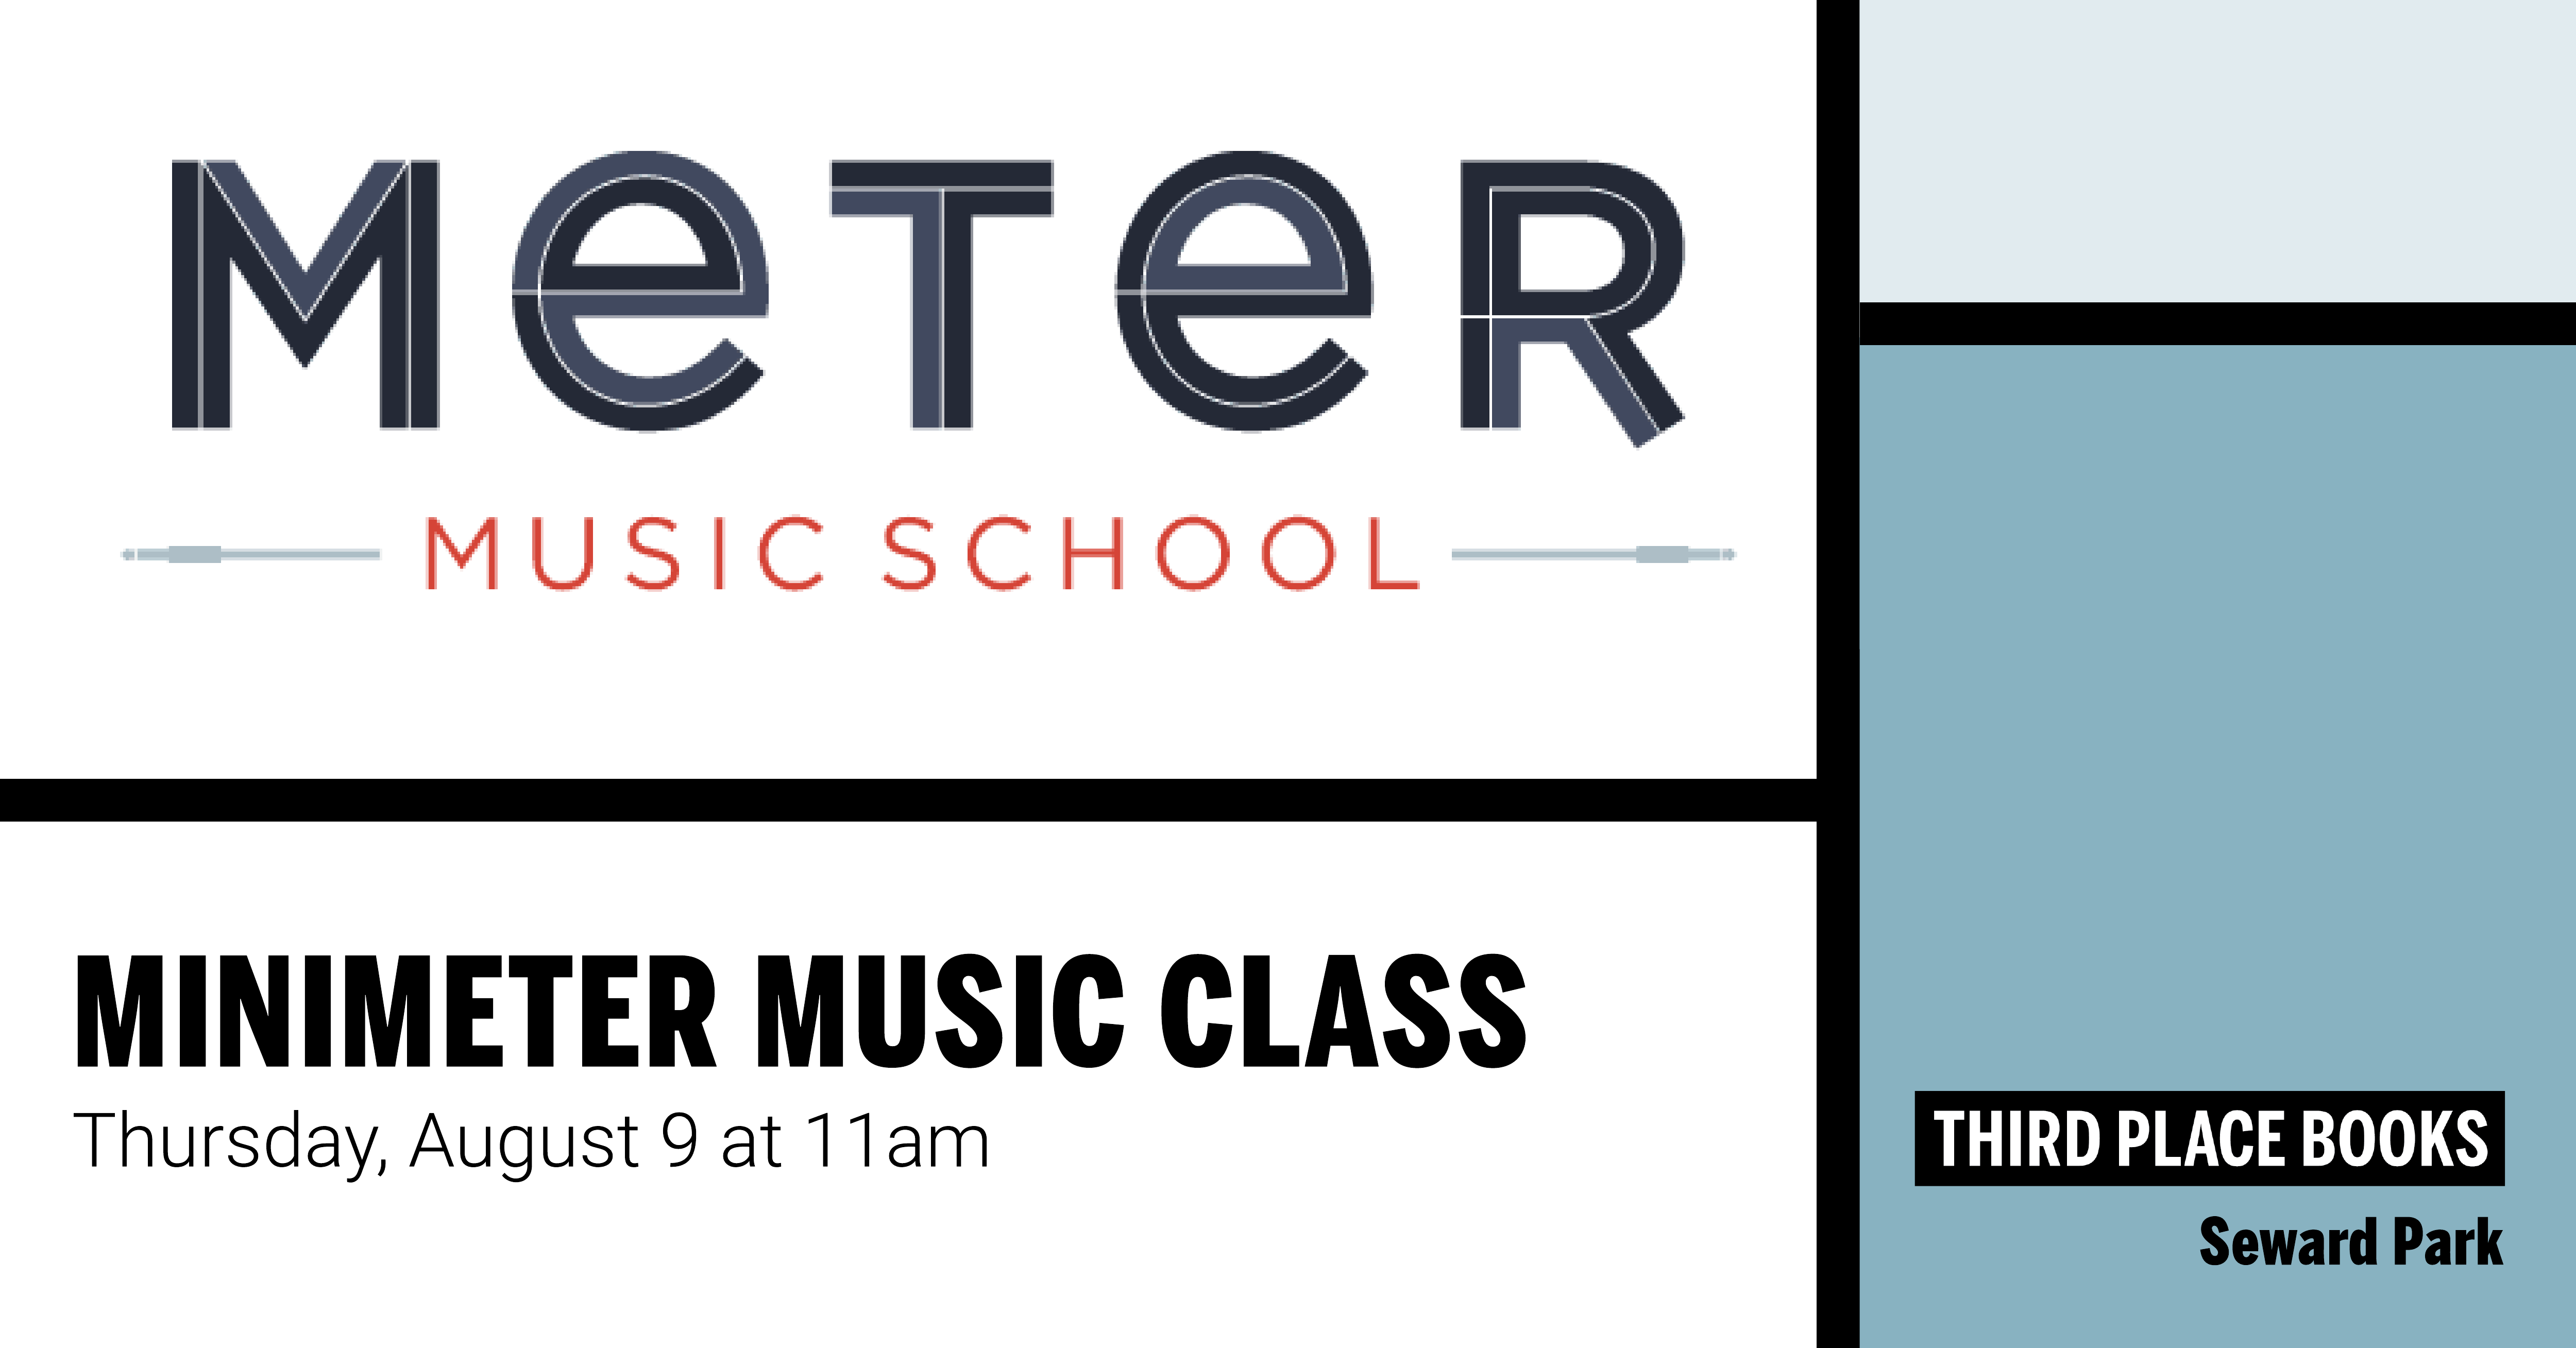 MiniMeter Music Class on August 9th at 11am